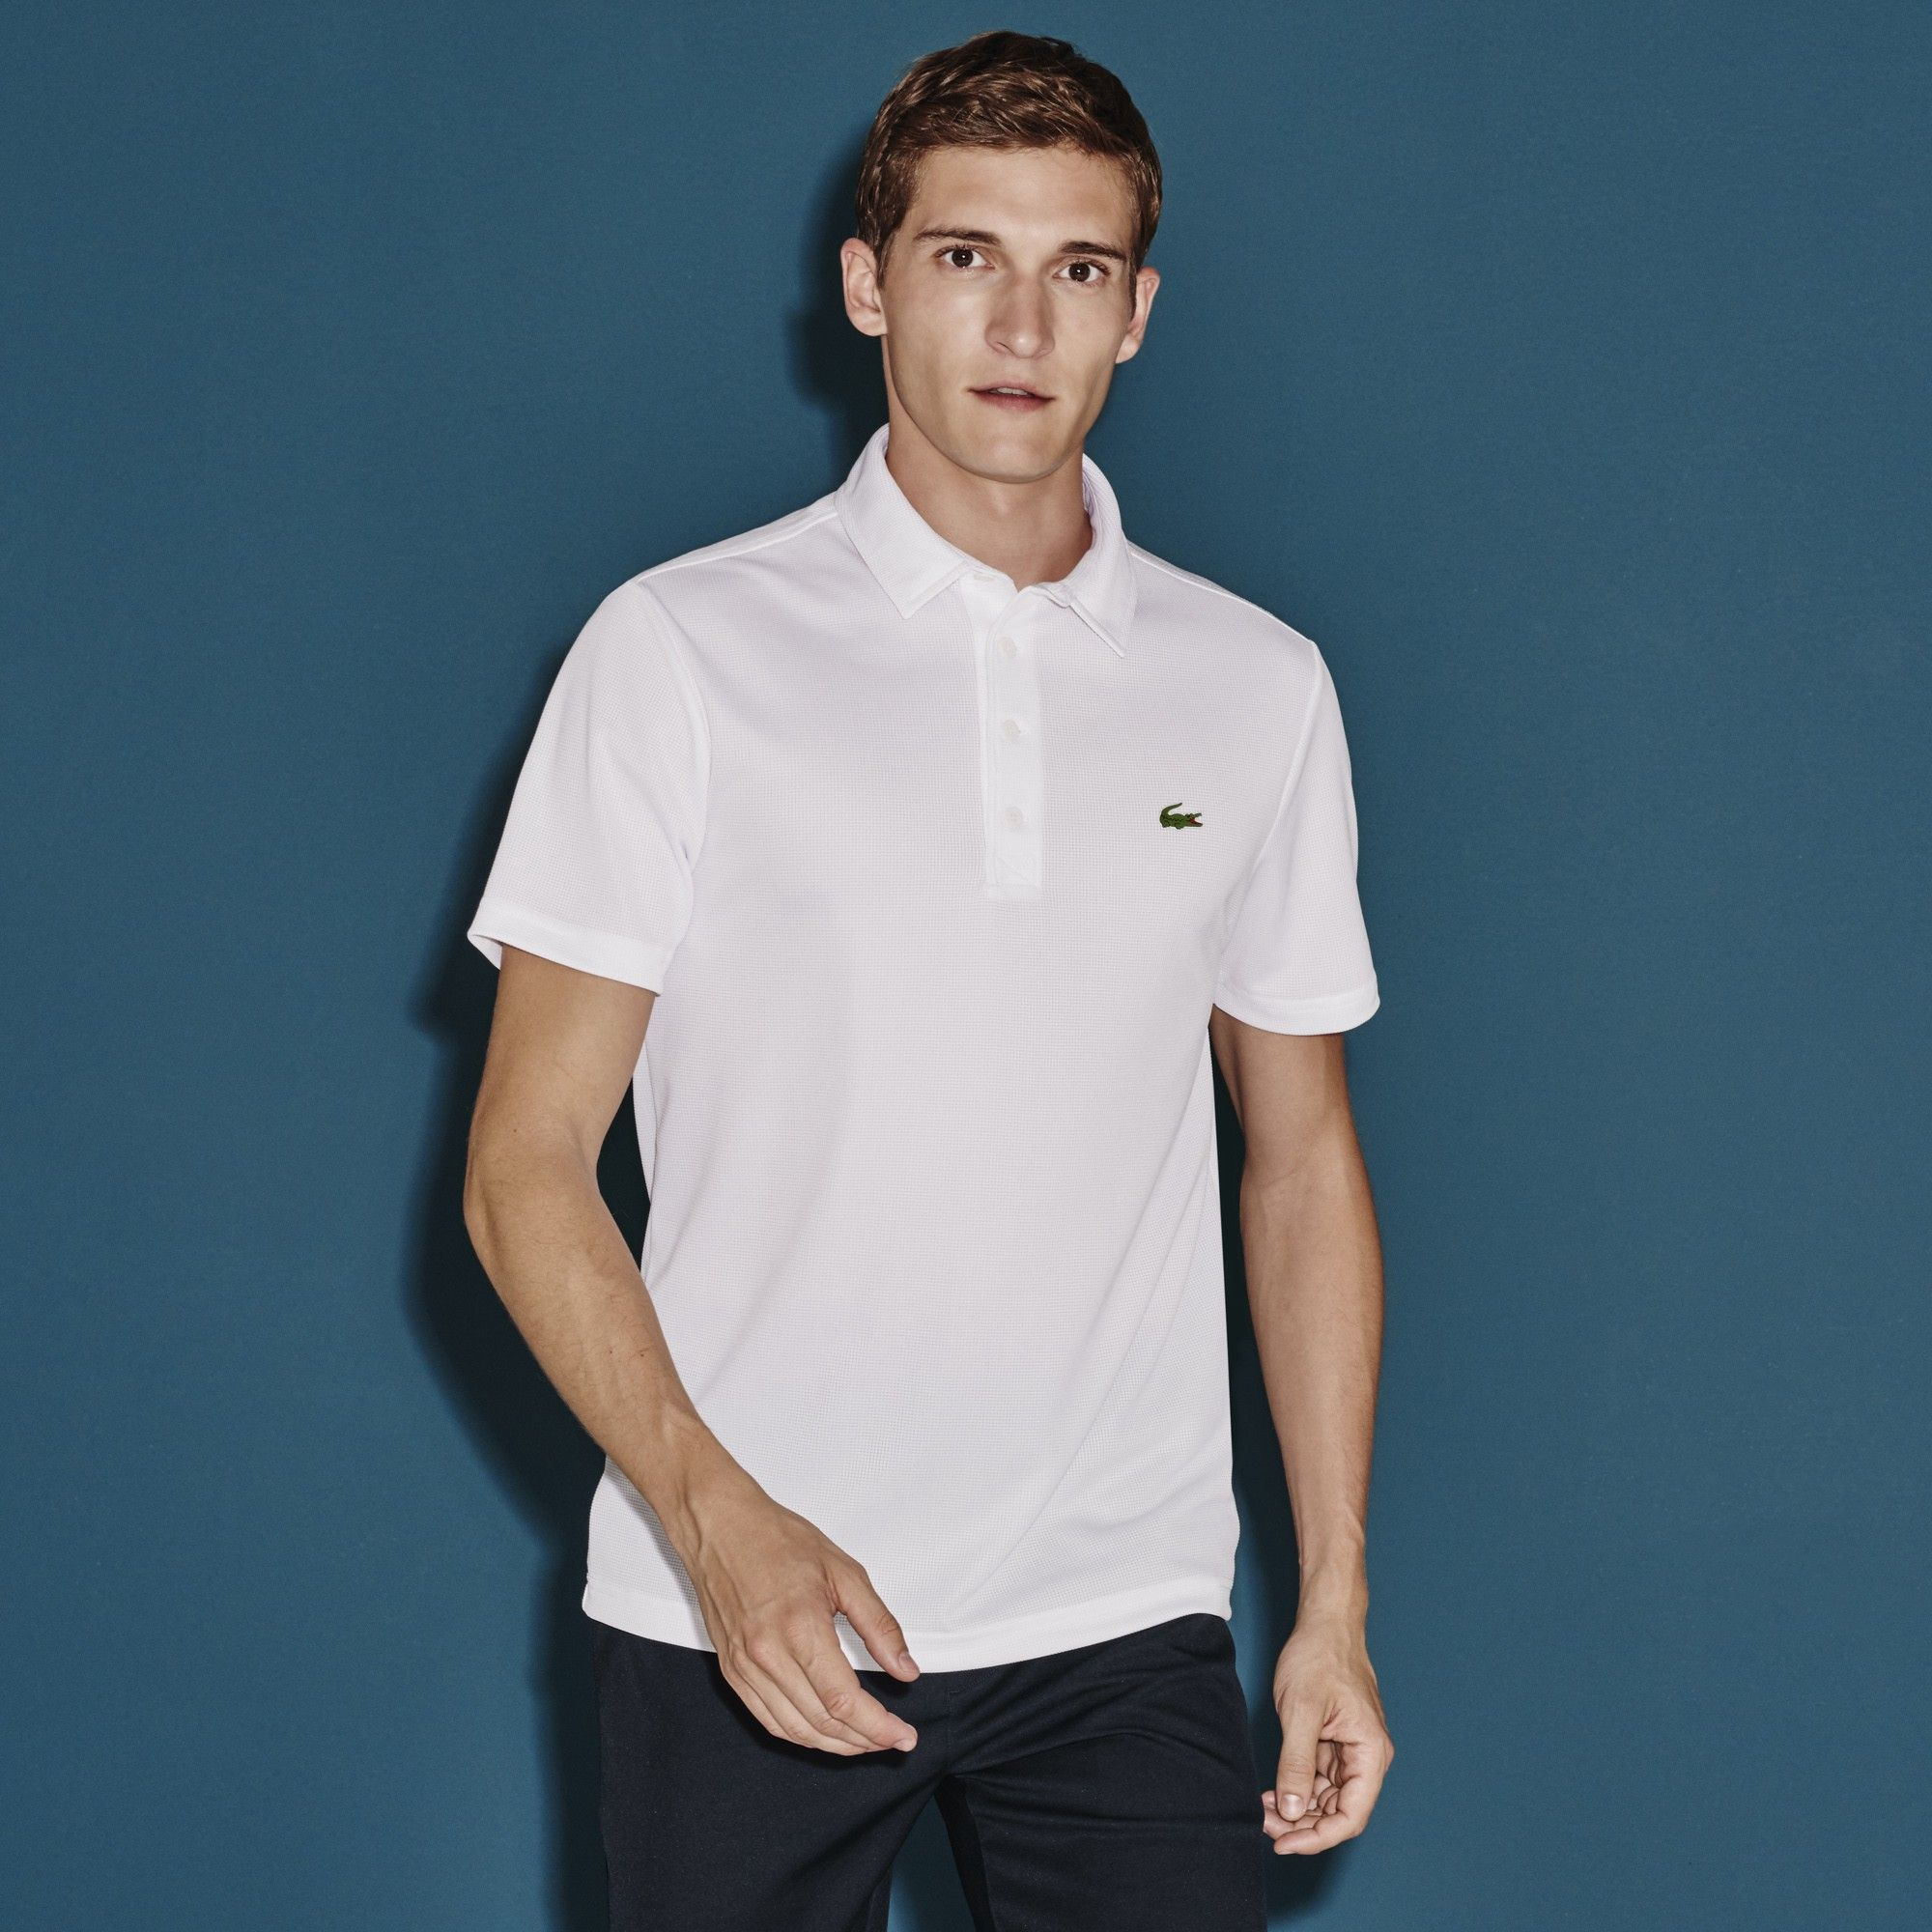 LACOSTE Men\u0027s SPORT Regular Fit Ultra Dry Textured Golf Polo Shirt - white.  #lacoste